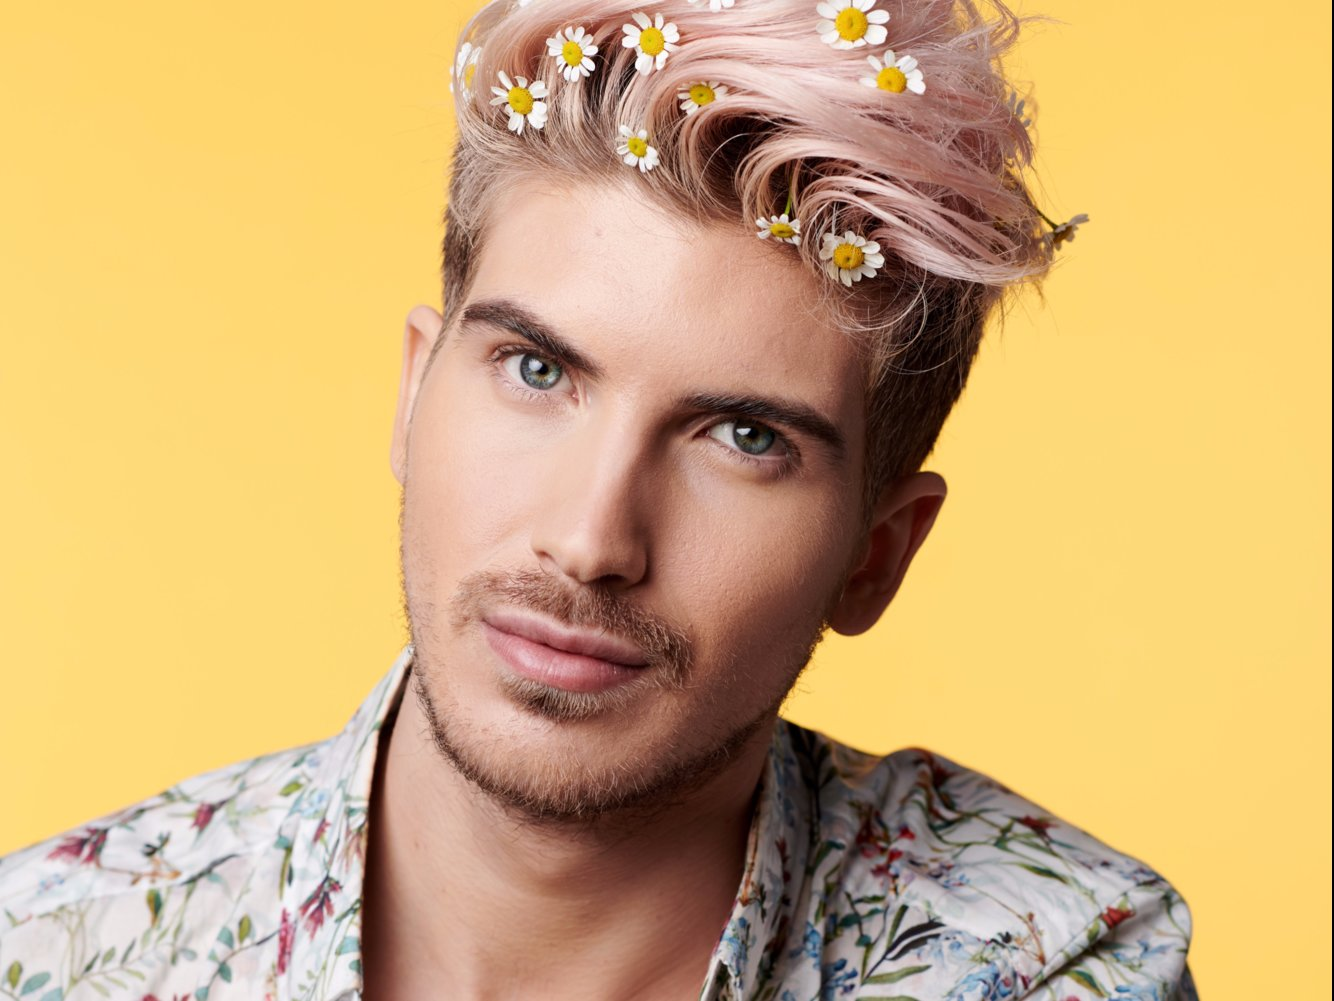 'Mentally draining and harming': YouTube star Joey Graceffa on what it feels like when the platform's algorithm turns against you